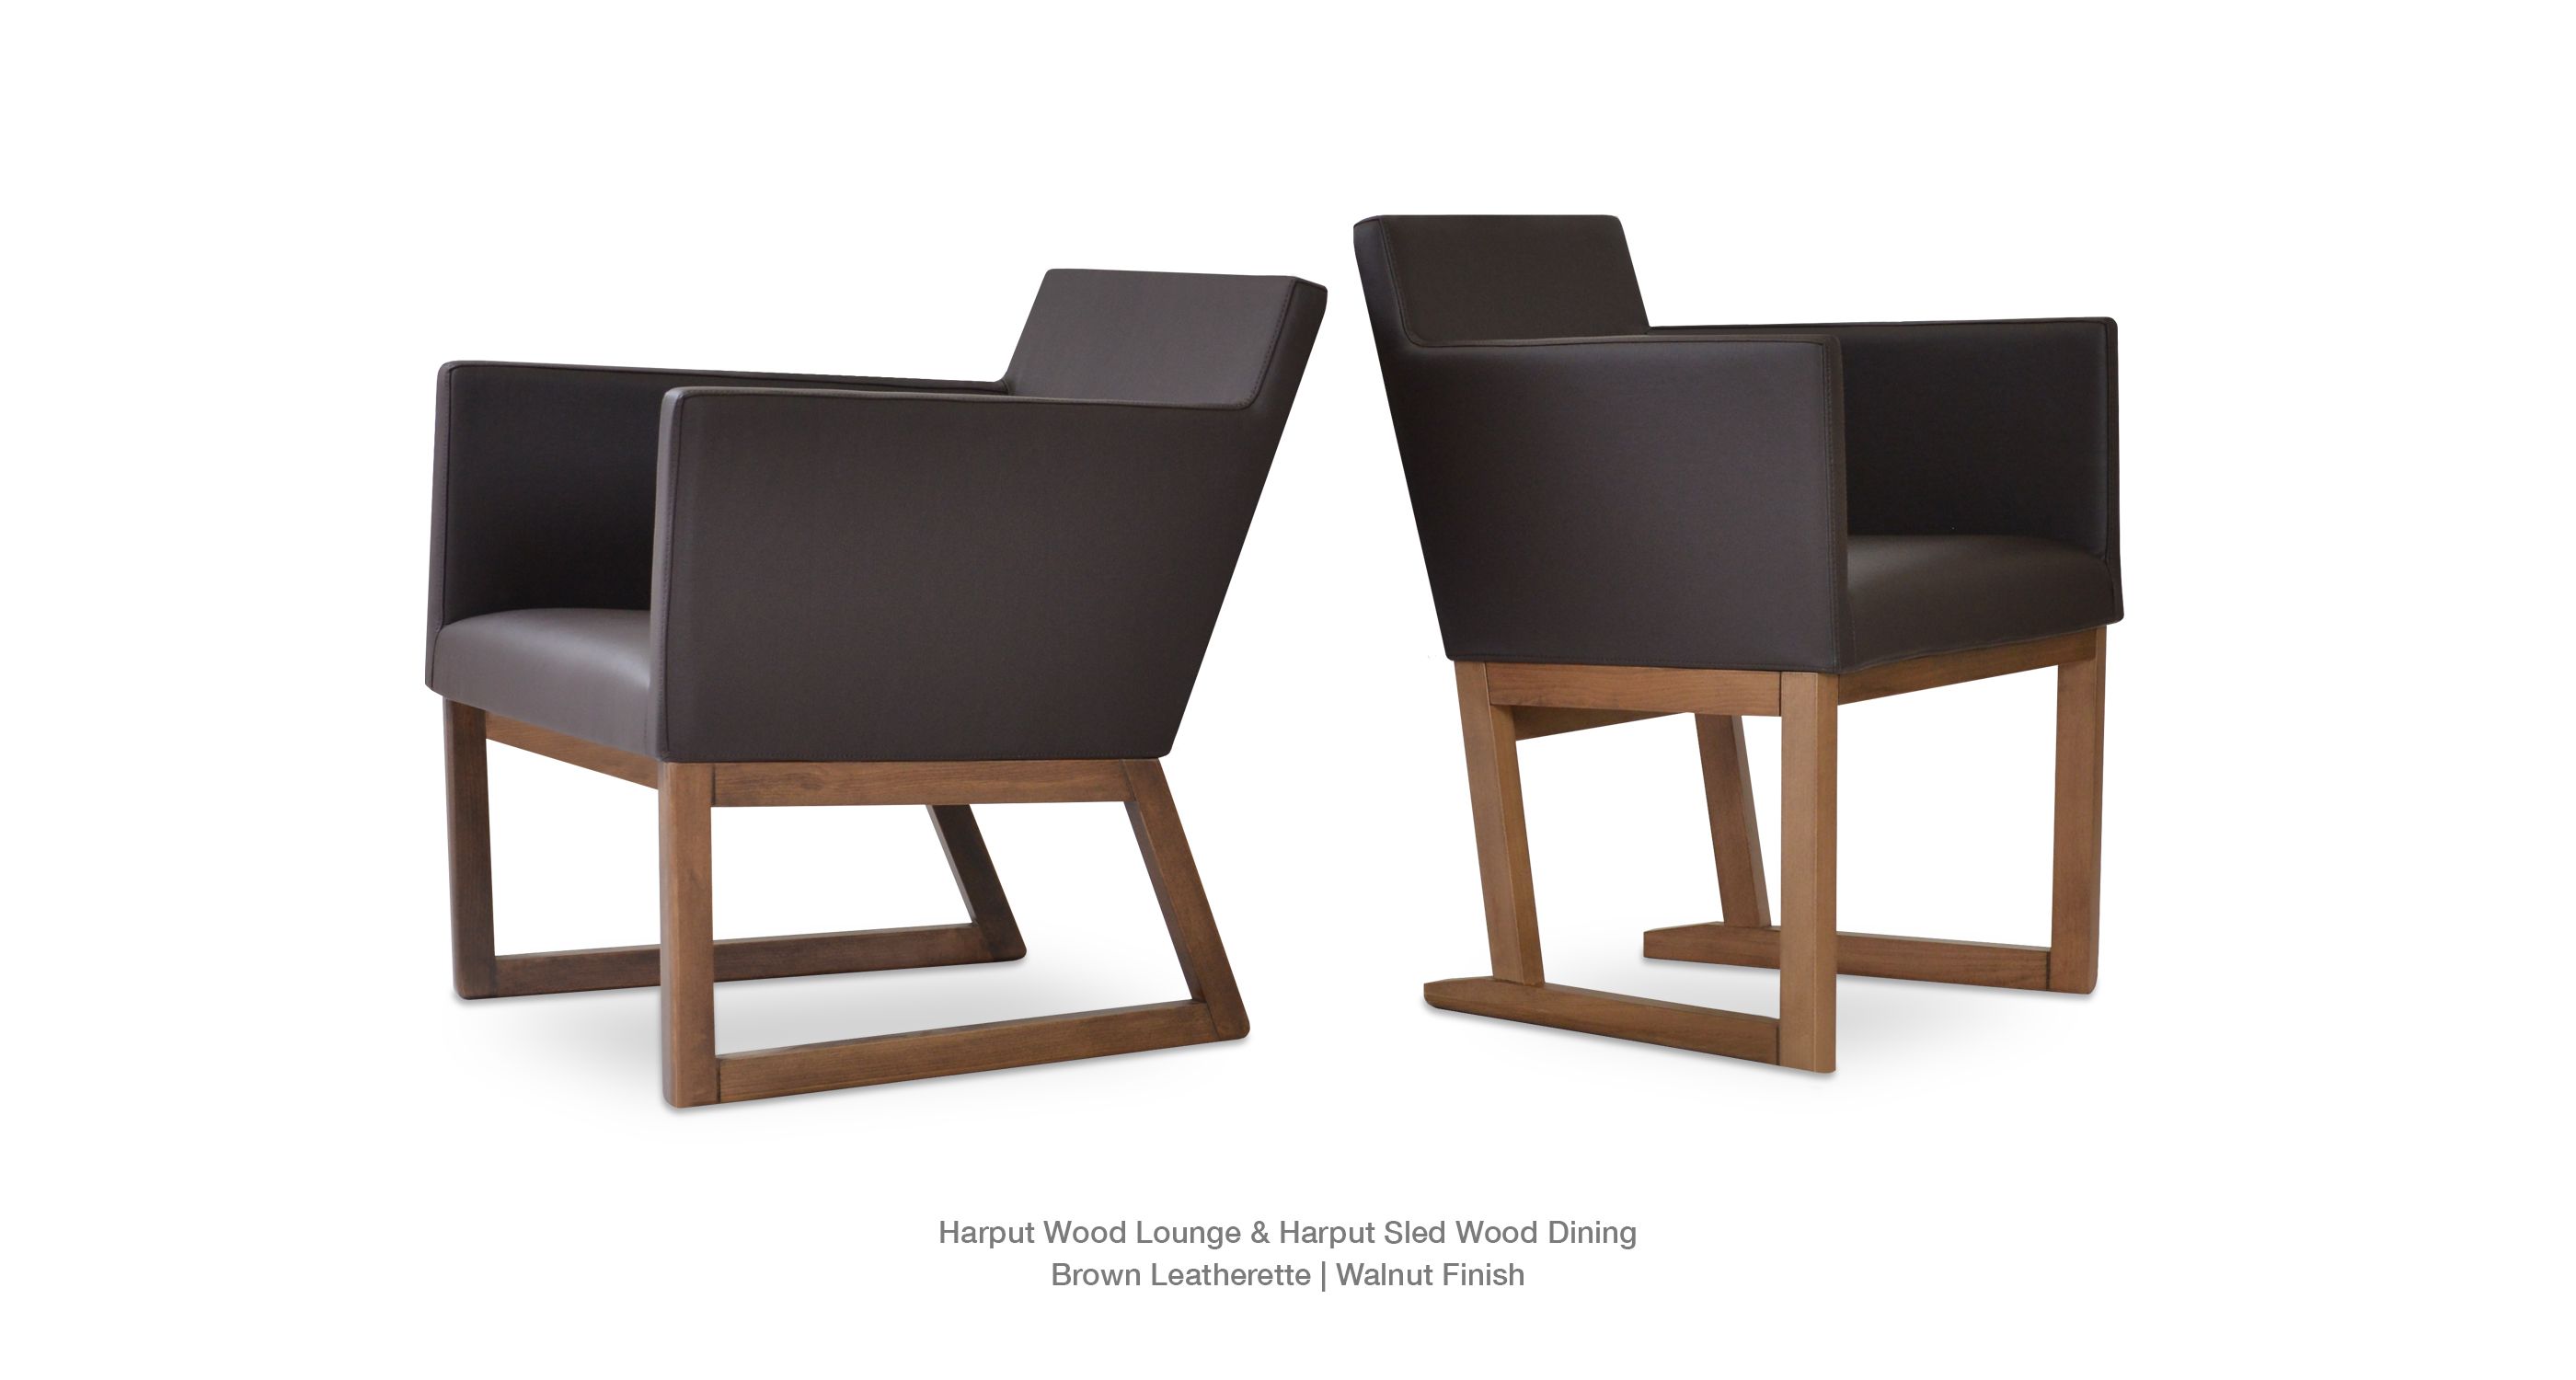 Harput Wood Lounge Brown